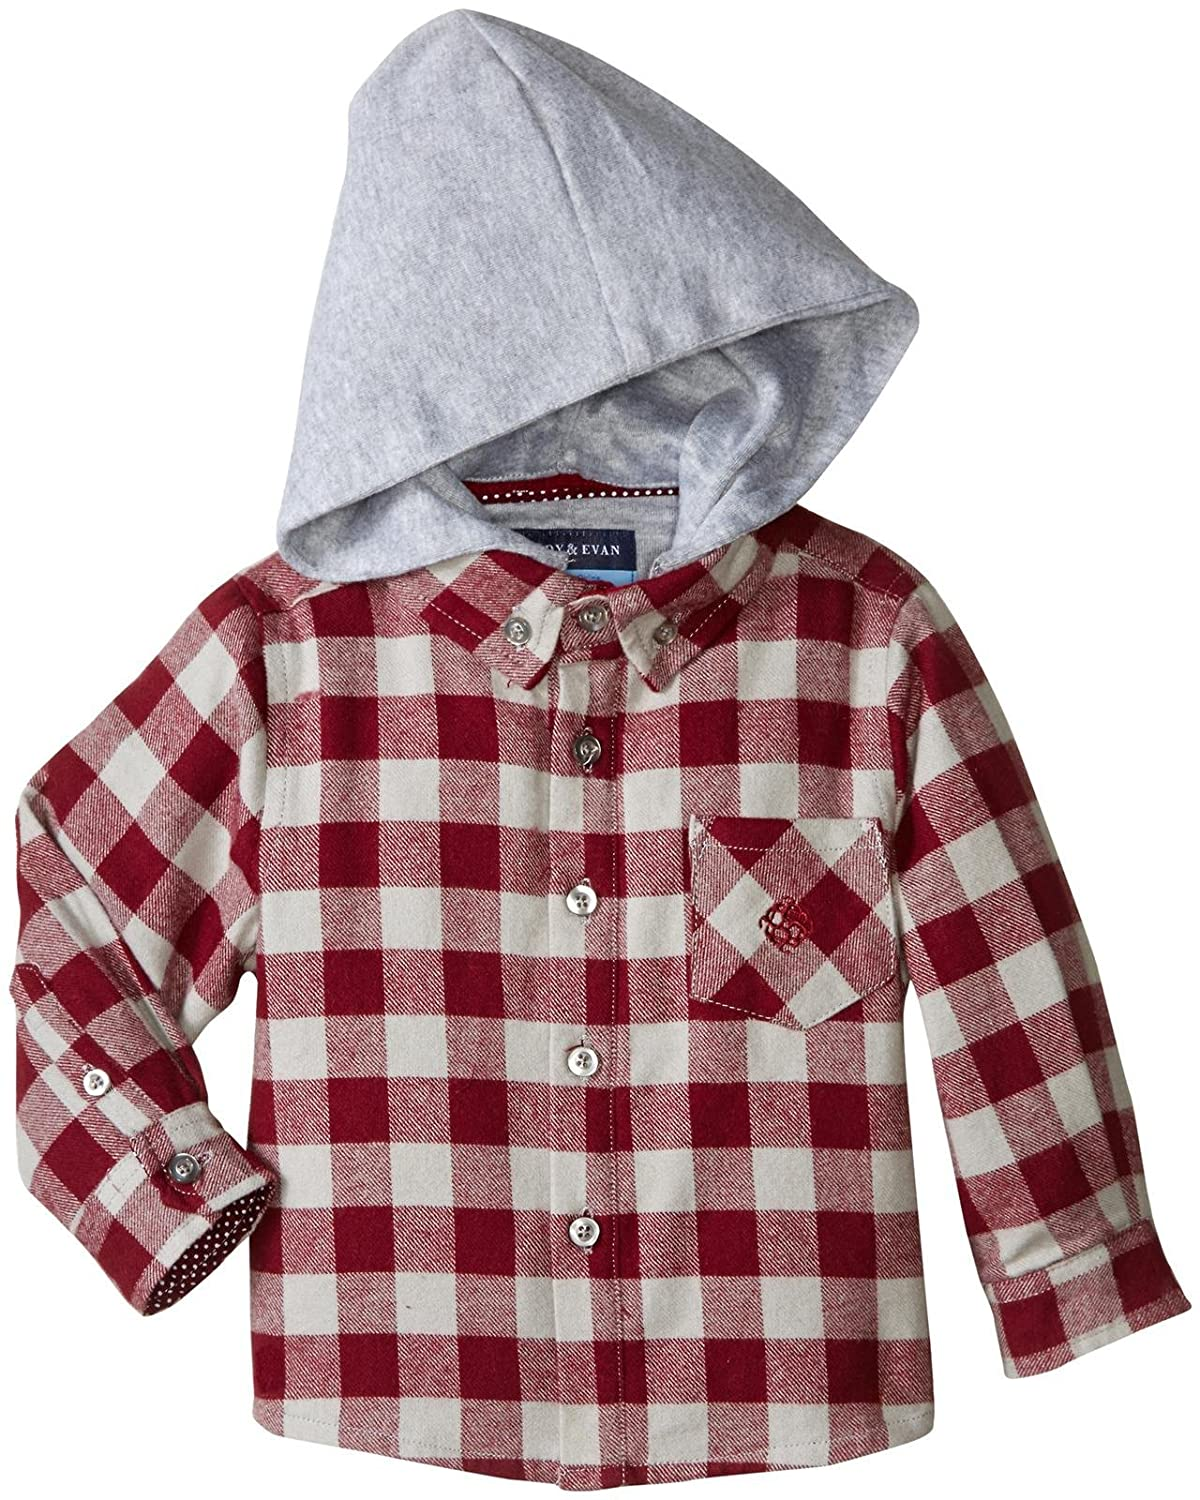 Andy & Evan Baby Boys' Hooded Check Flannel Shirt-Infant 26426A-RDH